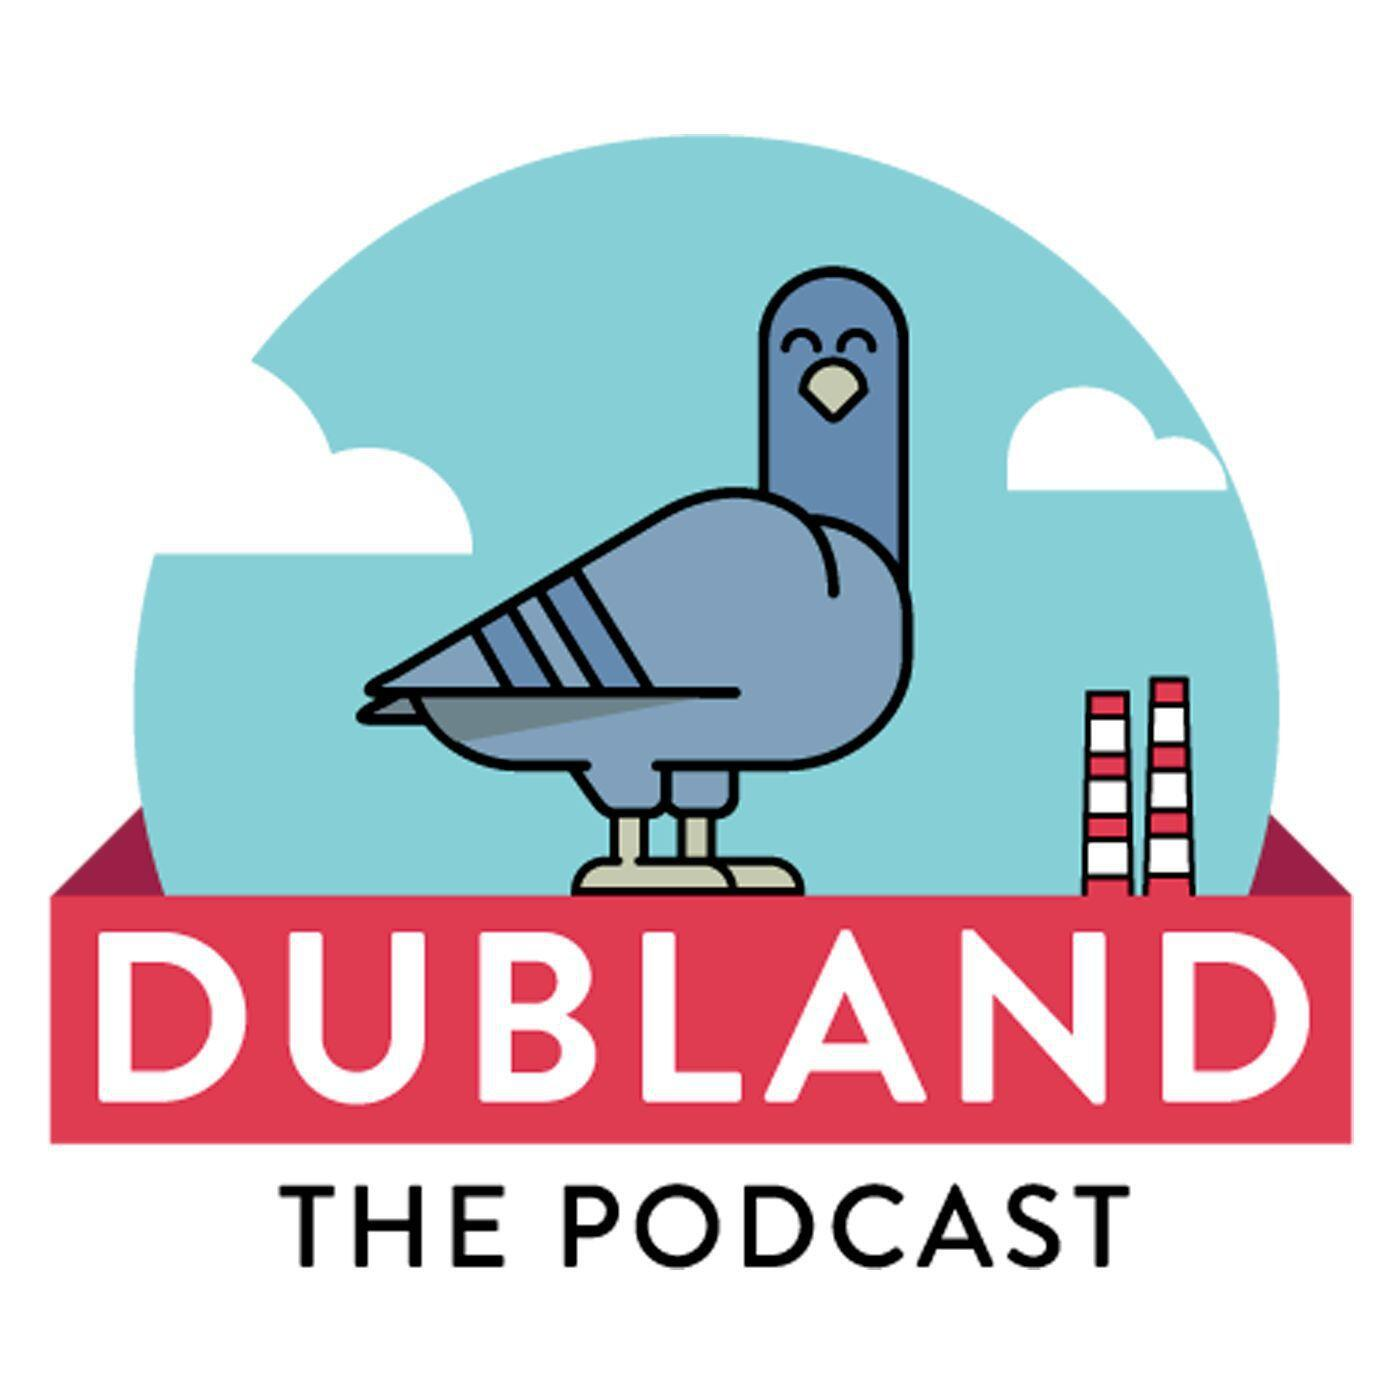 DUBLAND THE PODCAST EPISODE FOUR